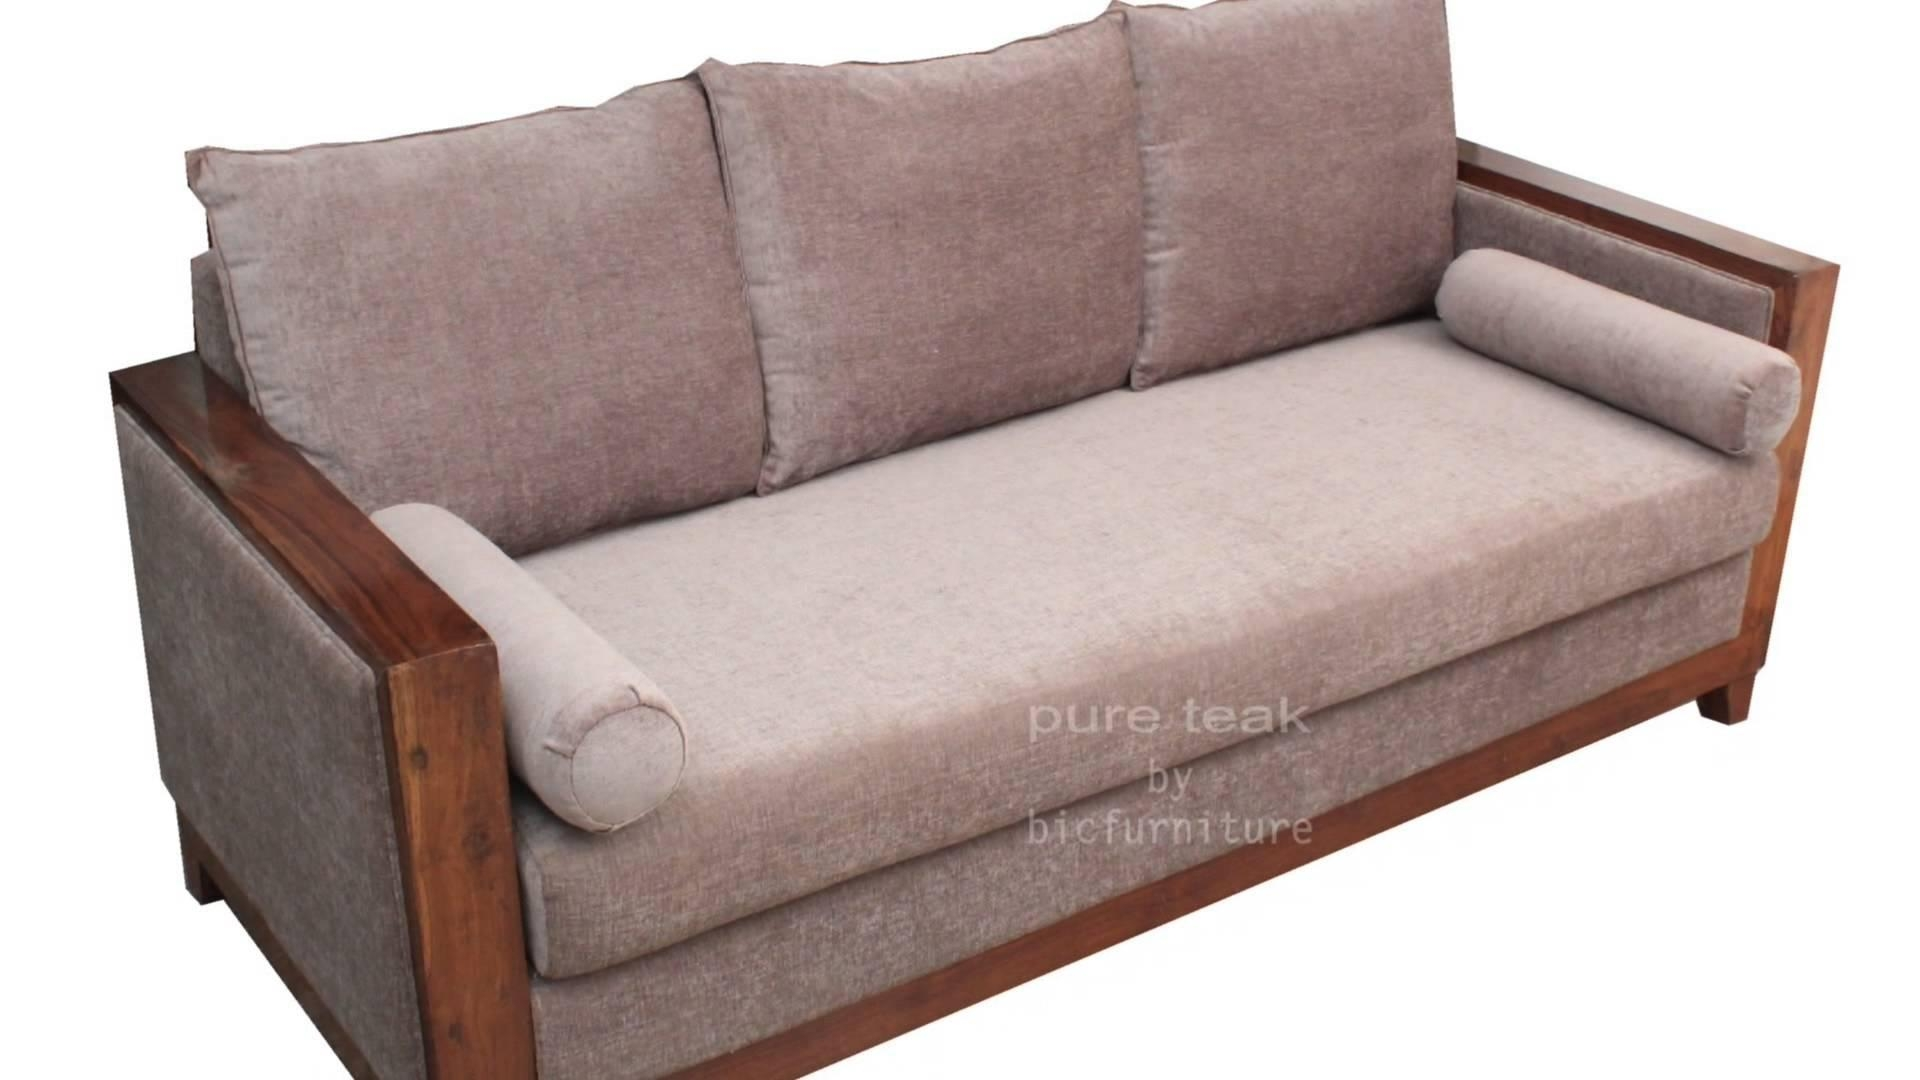 Teak Wood Sofa Set For Living Room With Comfortable Angles | Visit Within Comfortable Sofas And Chairs (Image 19 of 20)